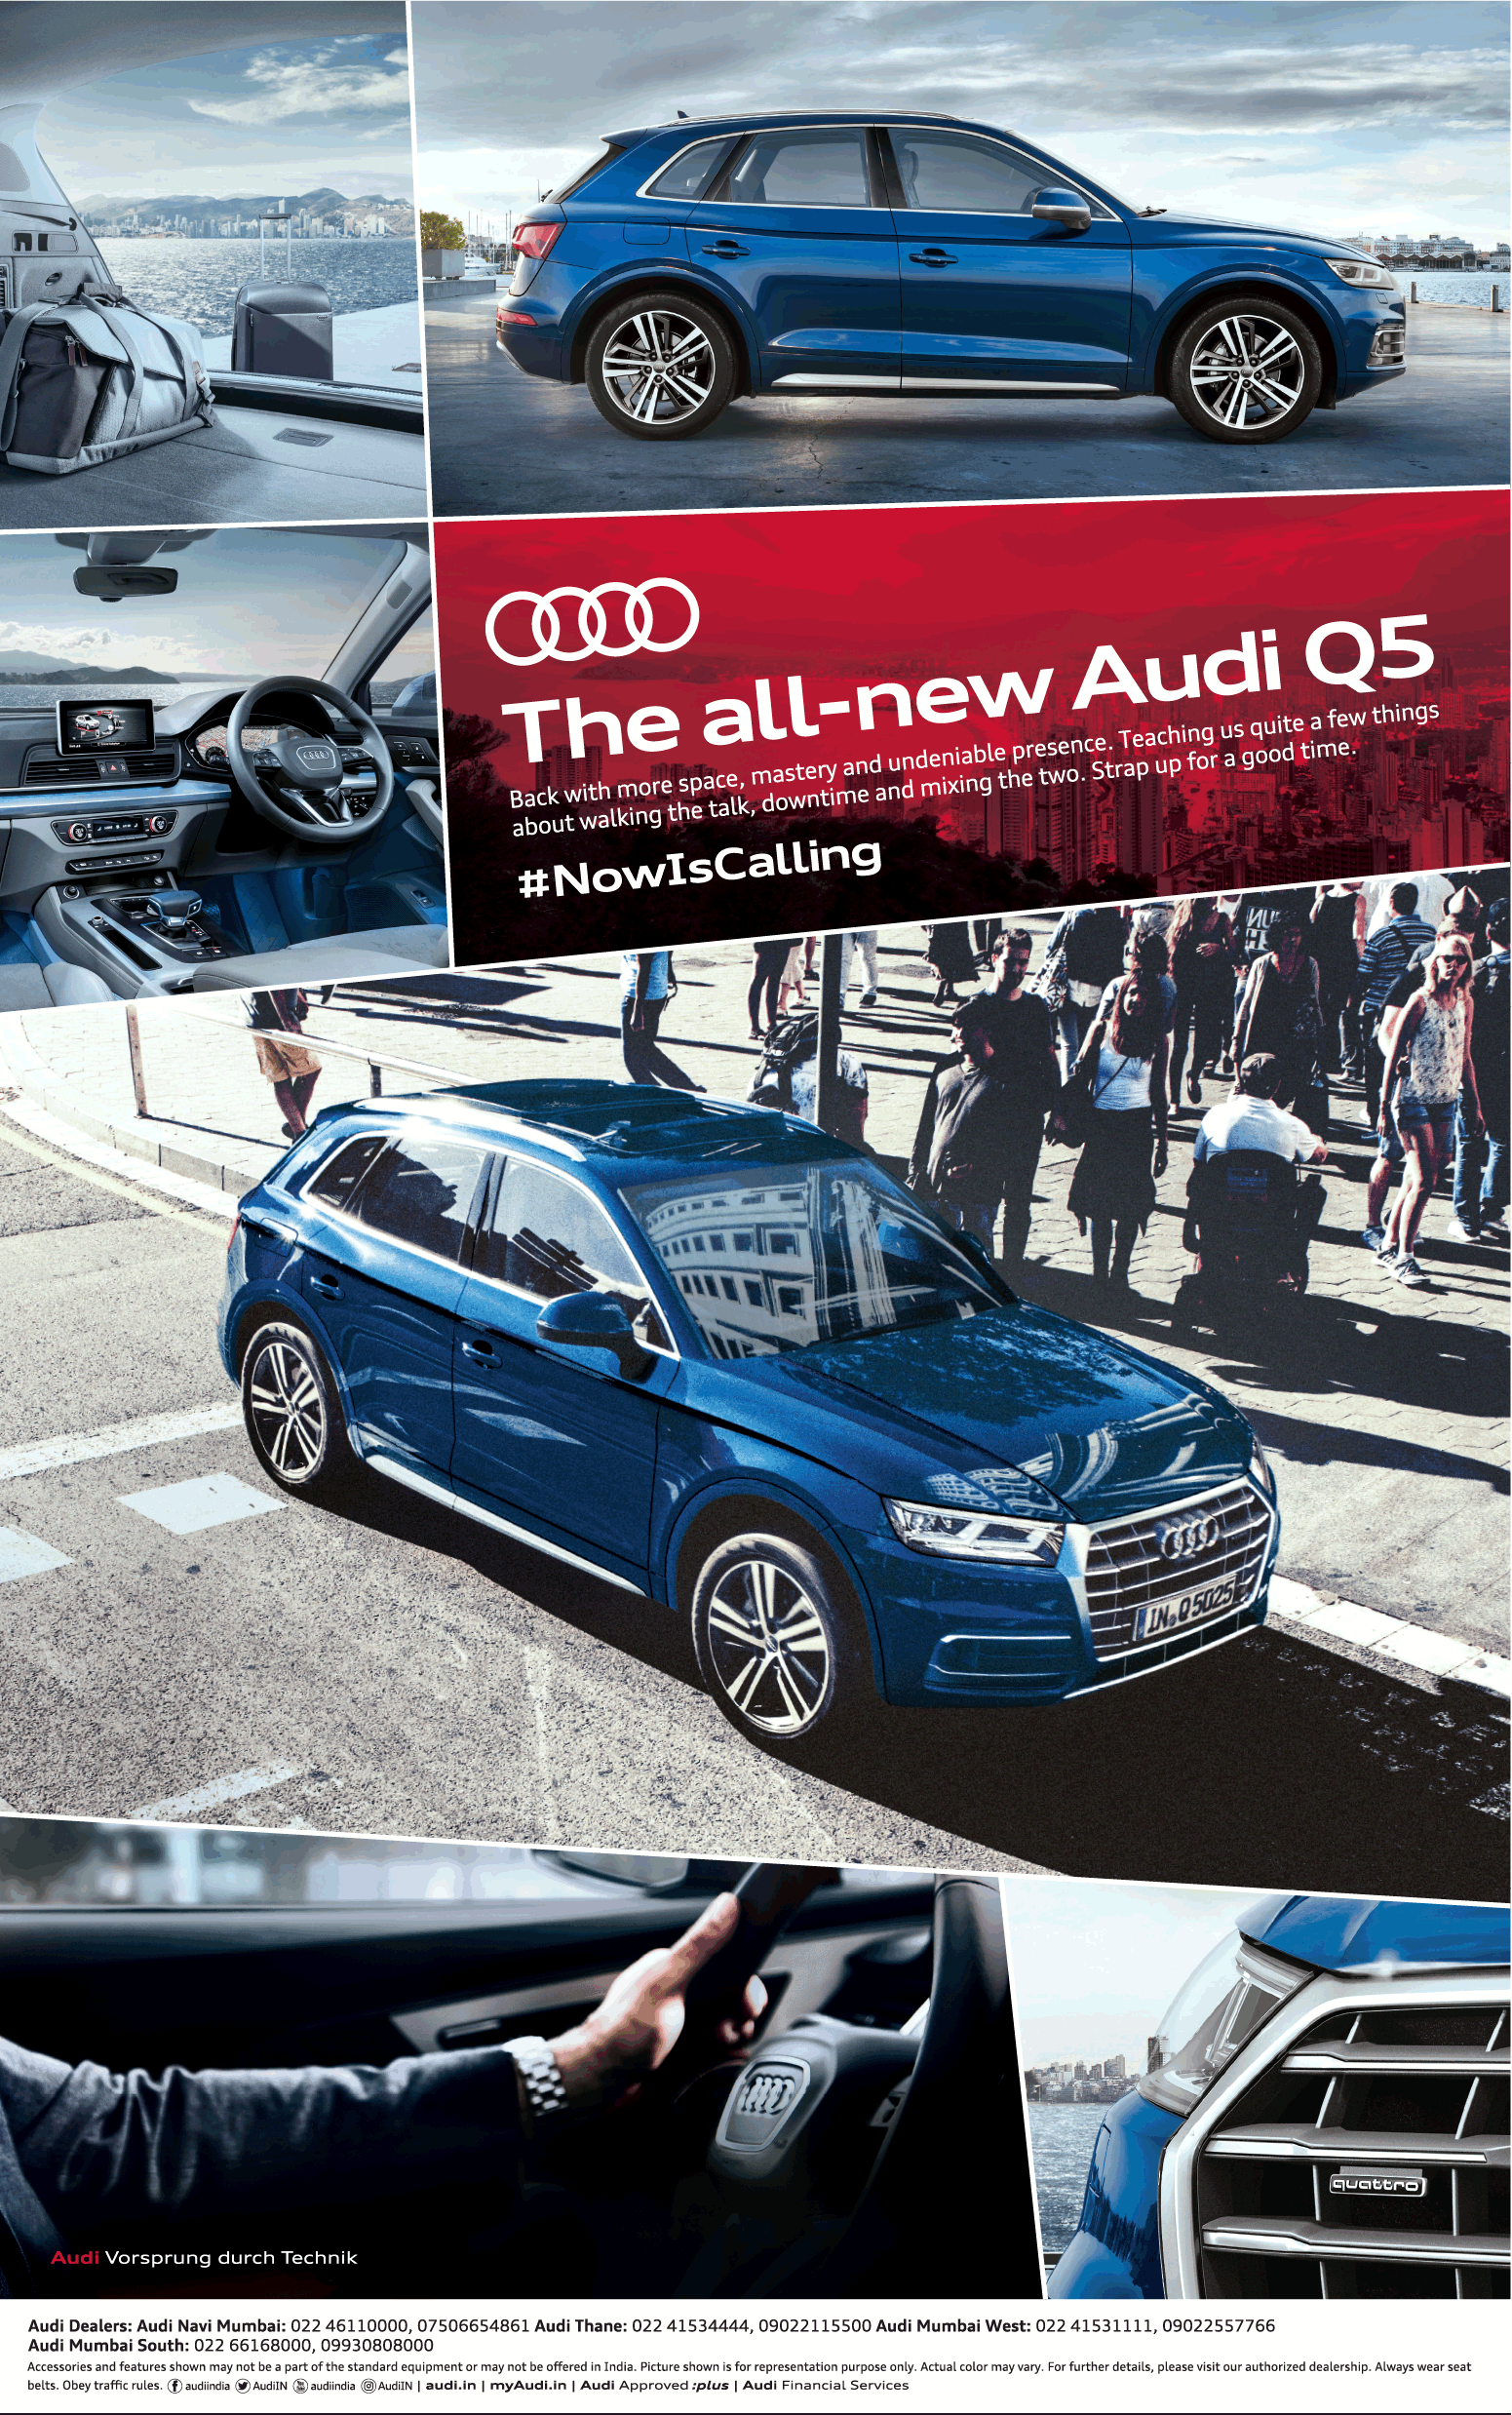 The All New Audi Q5 Now Is Calling Ad Times Of India Mumbai 19 01 2018 Audi Q5 Audi Car Advertising